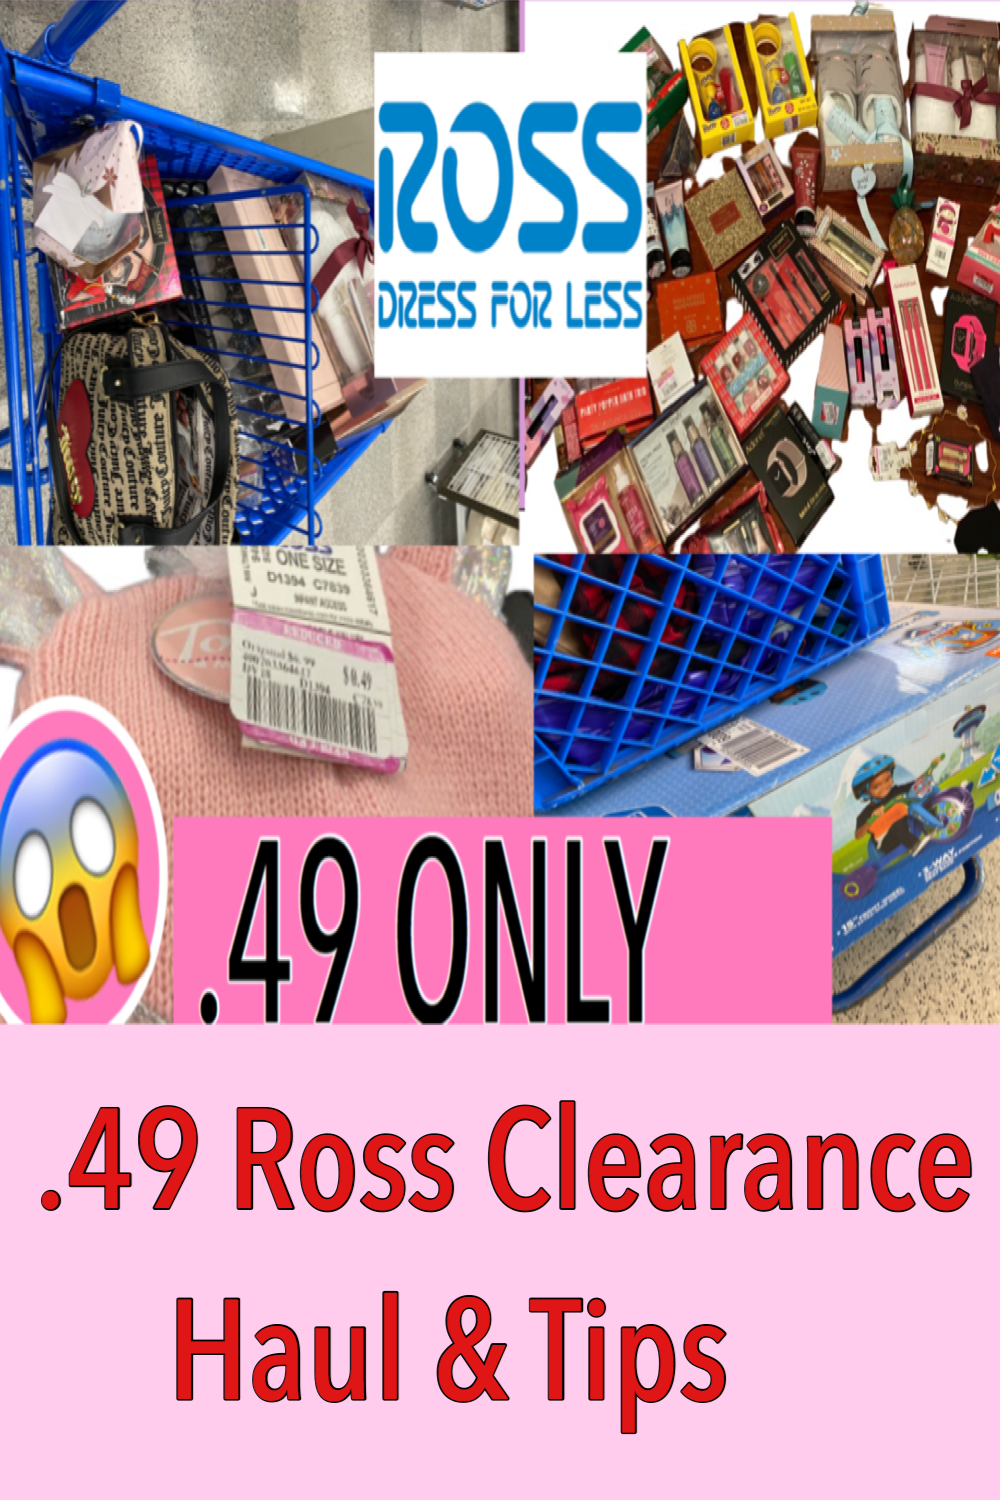 Ross 49 Clearance Sale Tips For Saving Money In 2020 Dresses For Less Ross Dresses Ross Store